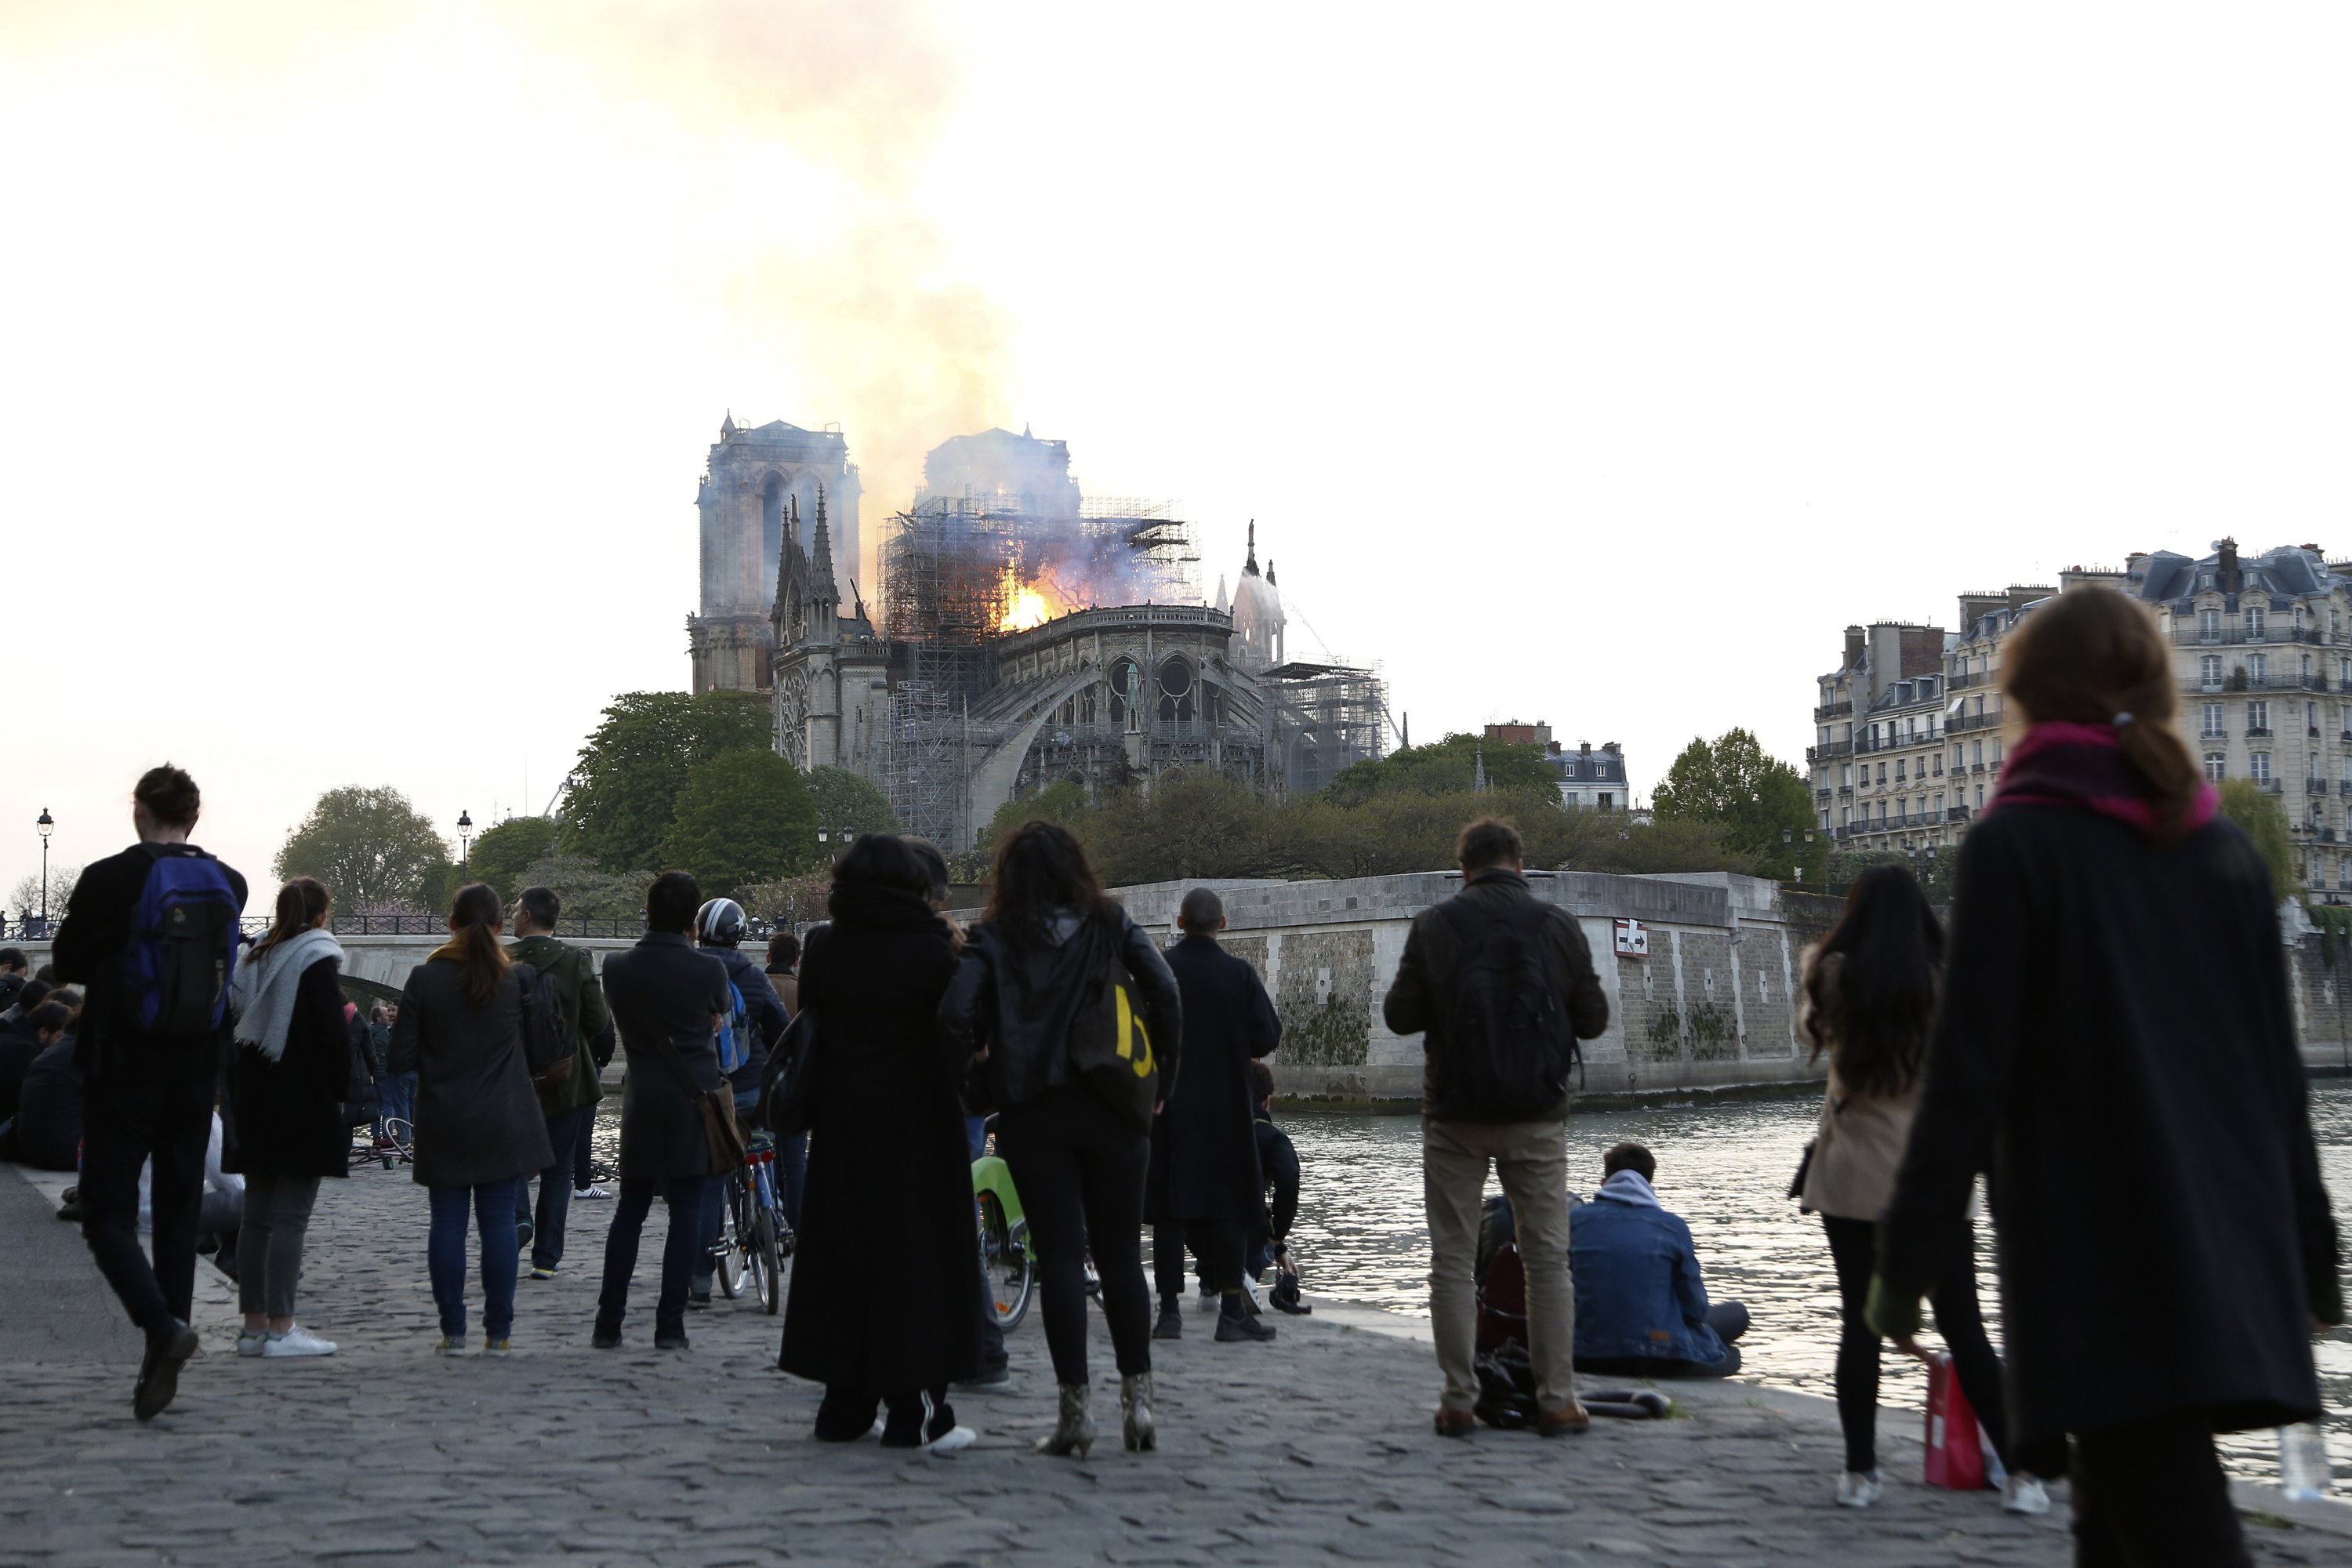 In the heart of Paris, watching a symbol of France burn